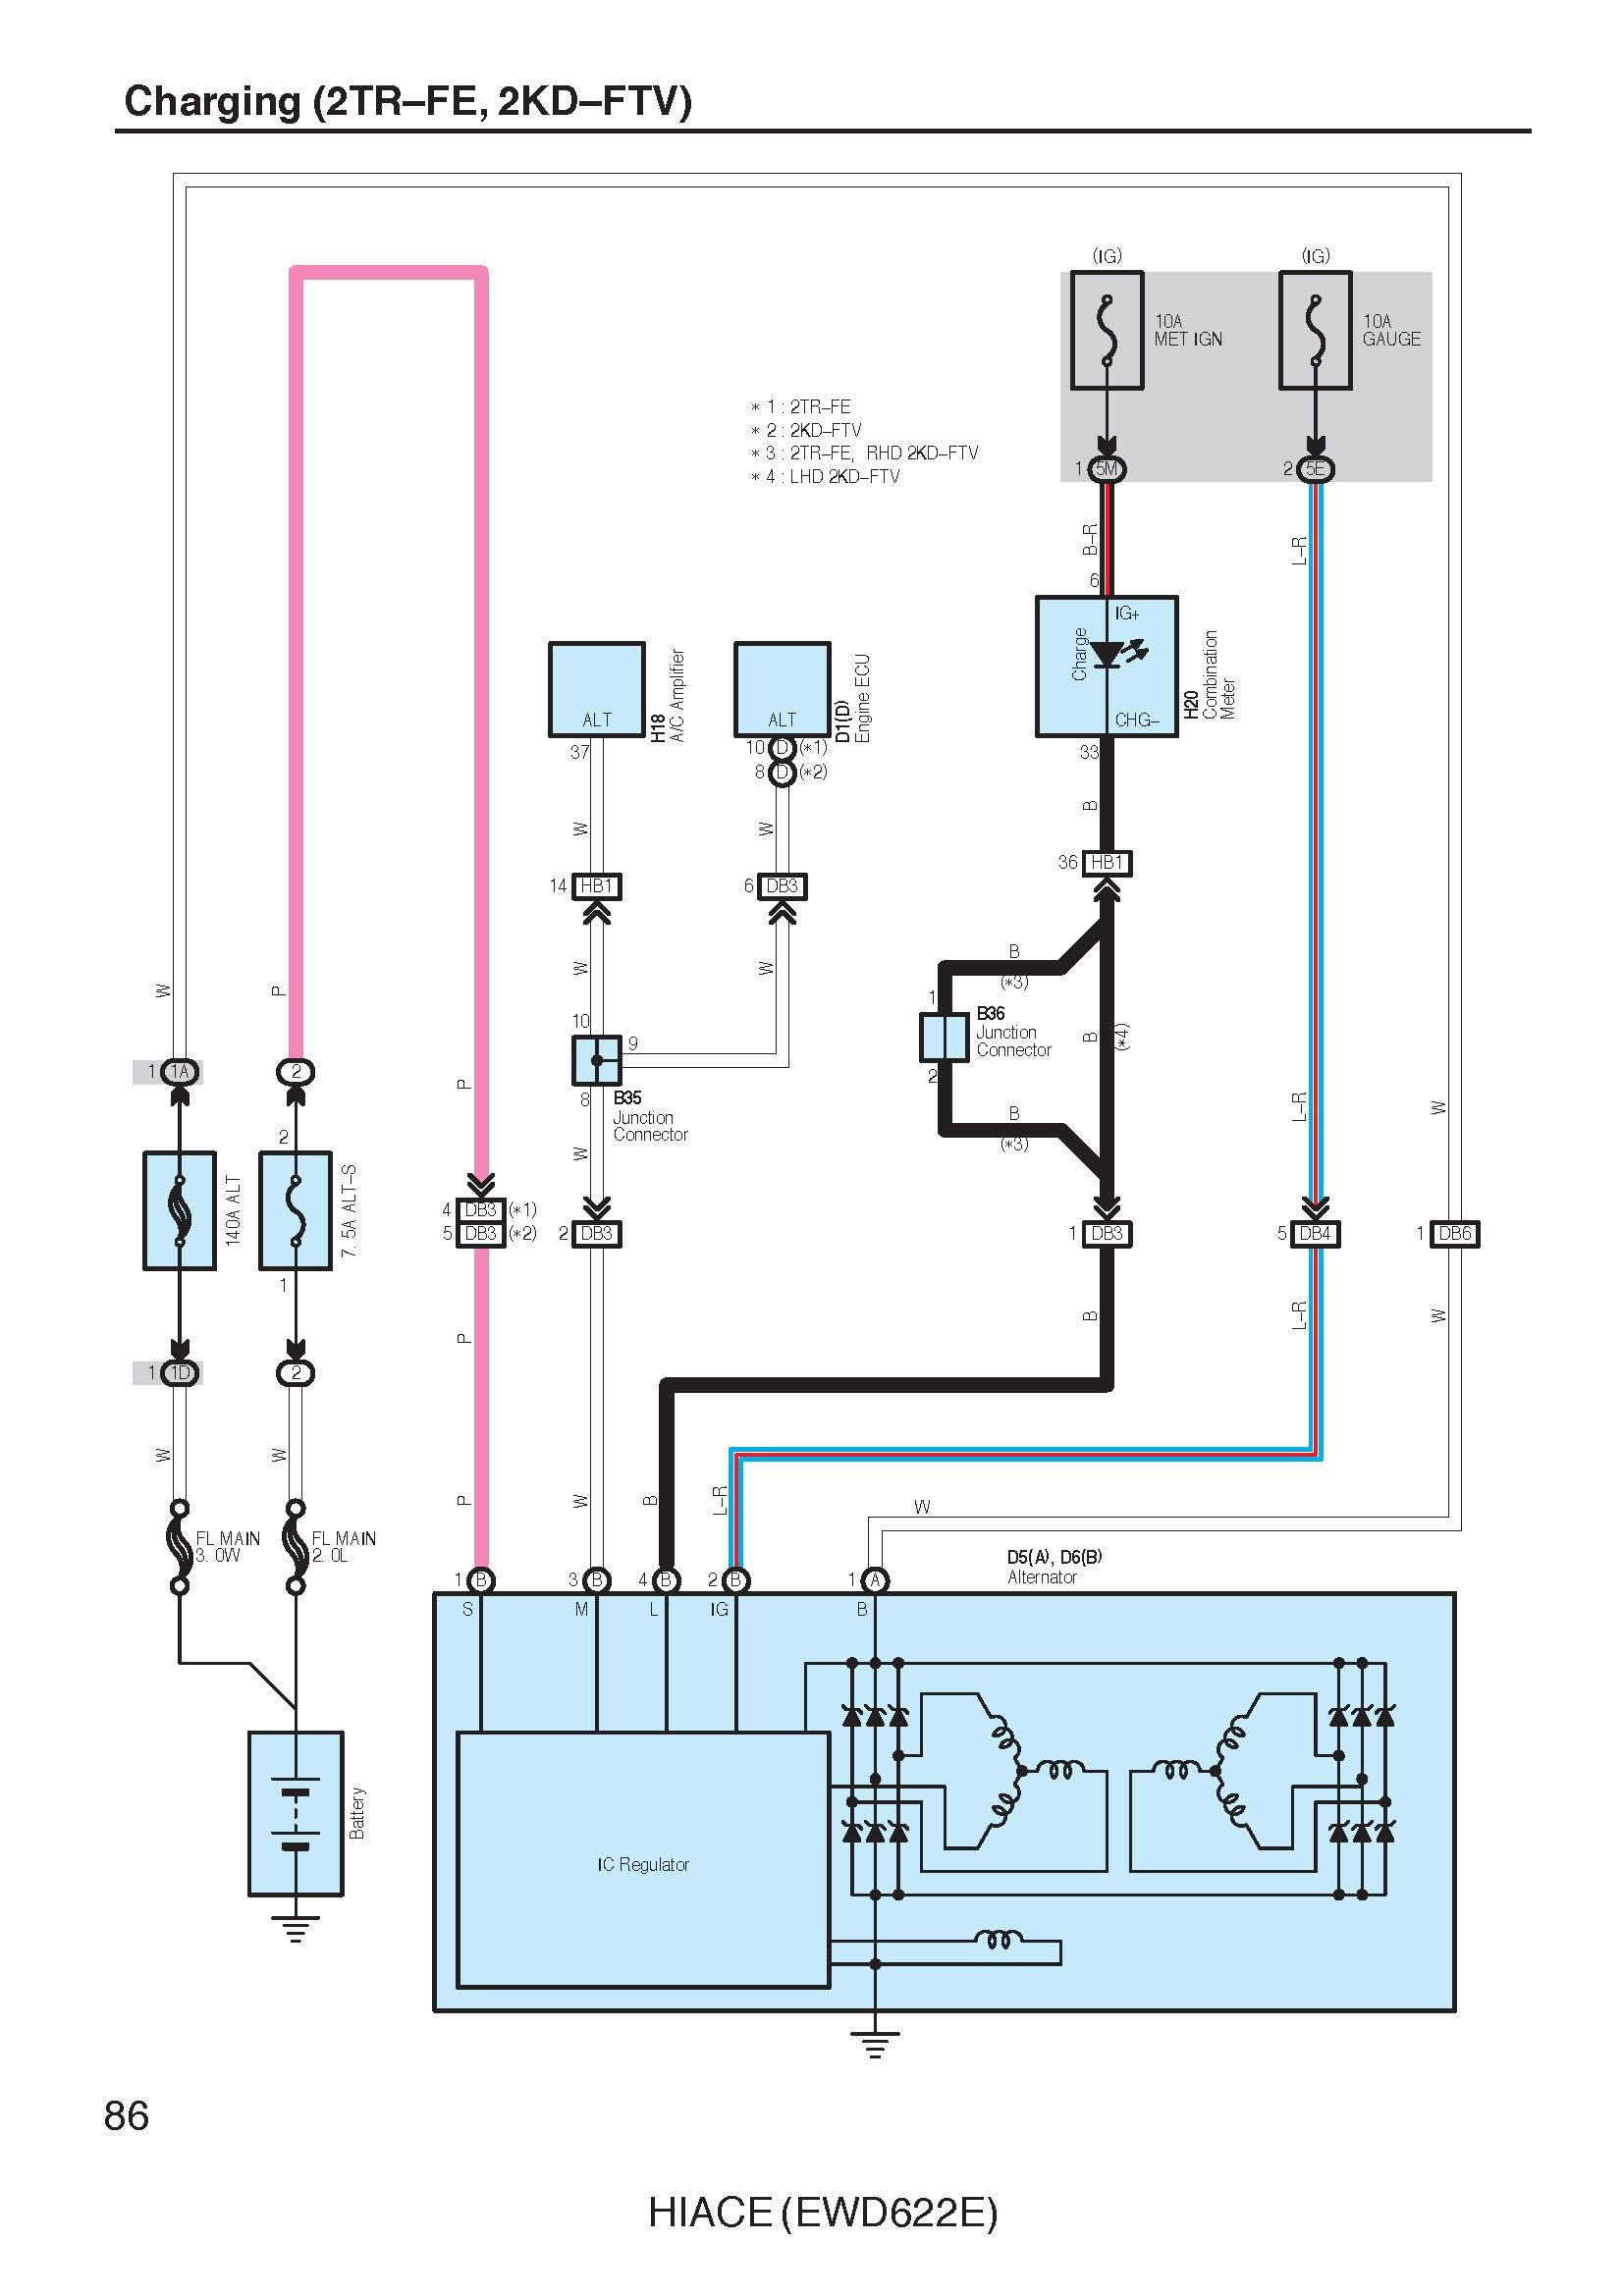 wiring diagram as used wiring diagram schematic name rh 1 20 4 systembeimroulette de